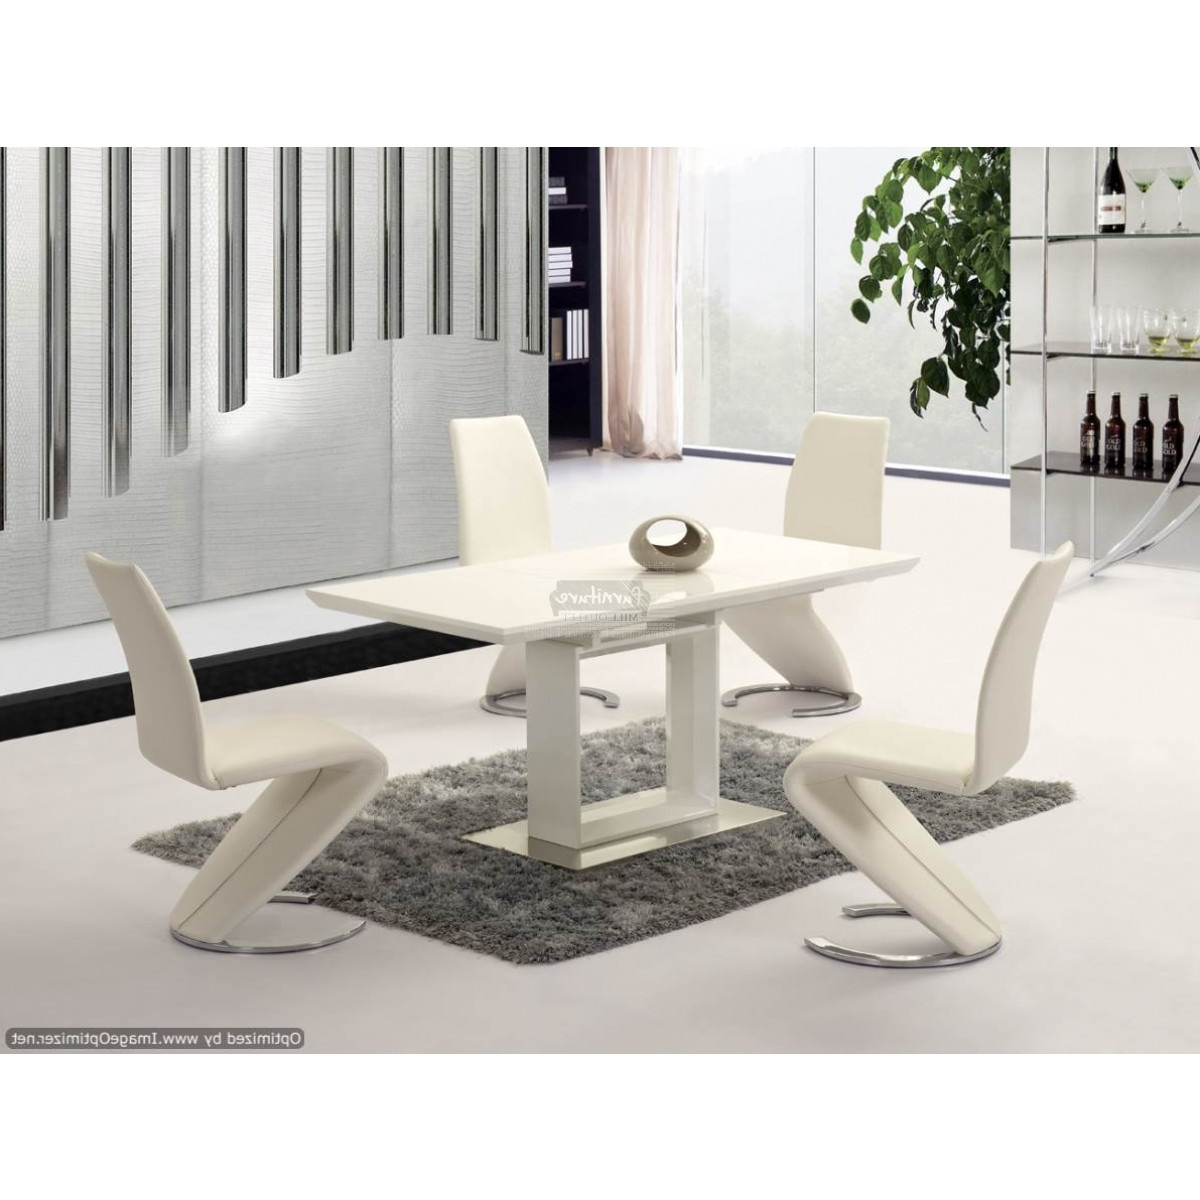 Space White High Gloss Extending Dining Table – 120Cm To 160Cm Intended For Current Extending Gloss Dining Tables (View 18 of 25)